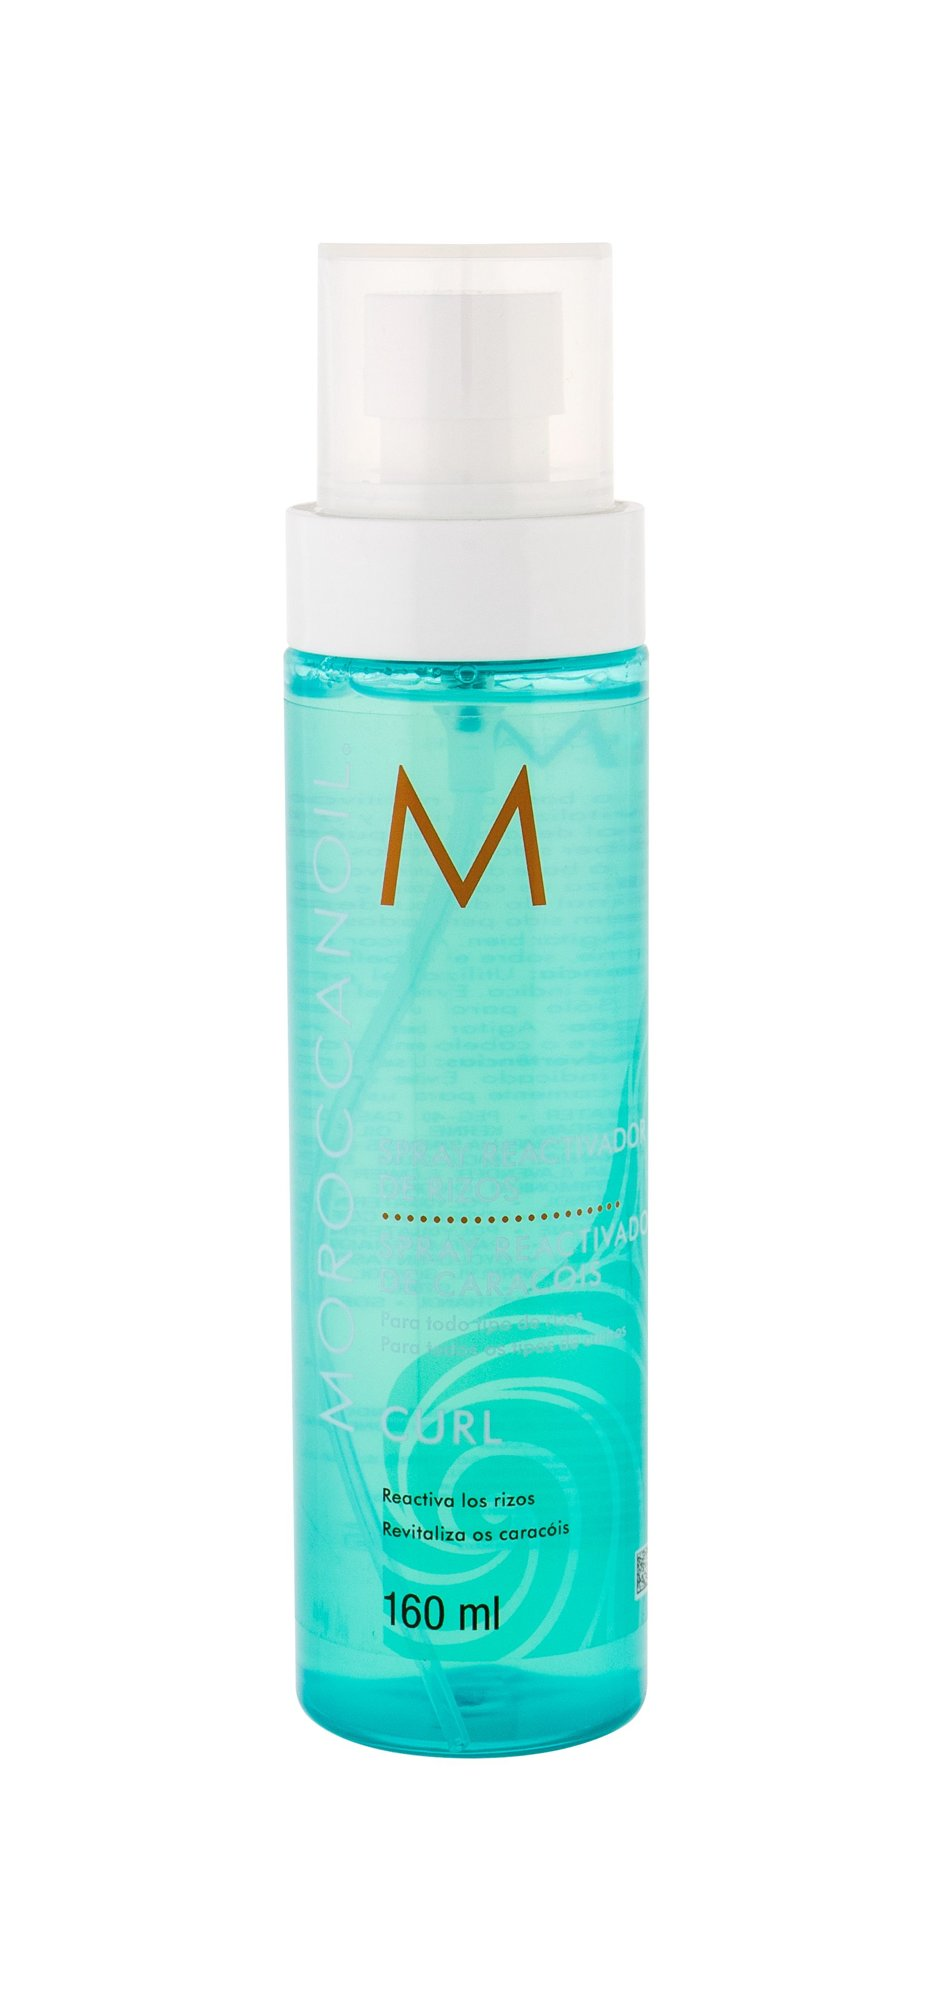 Moroccanoil Curl Waves Styling 160ml